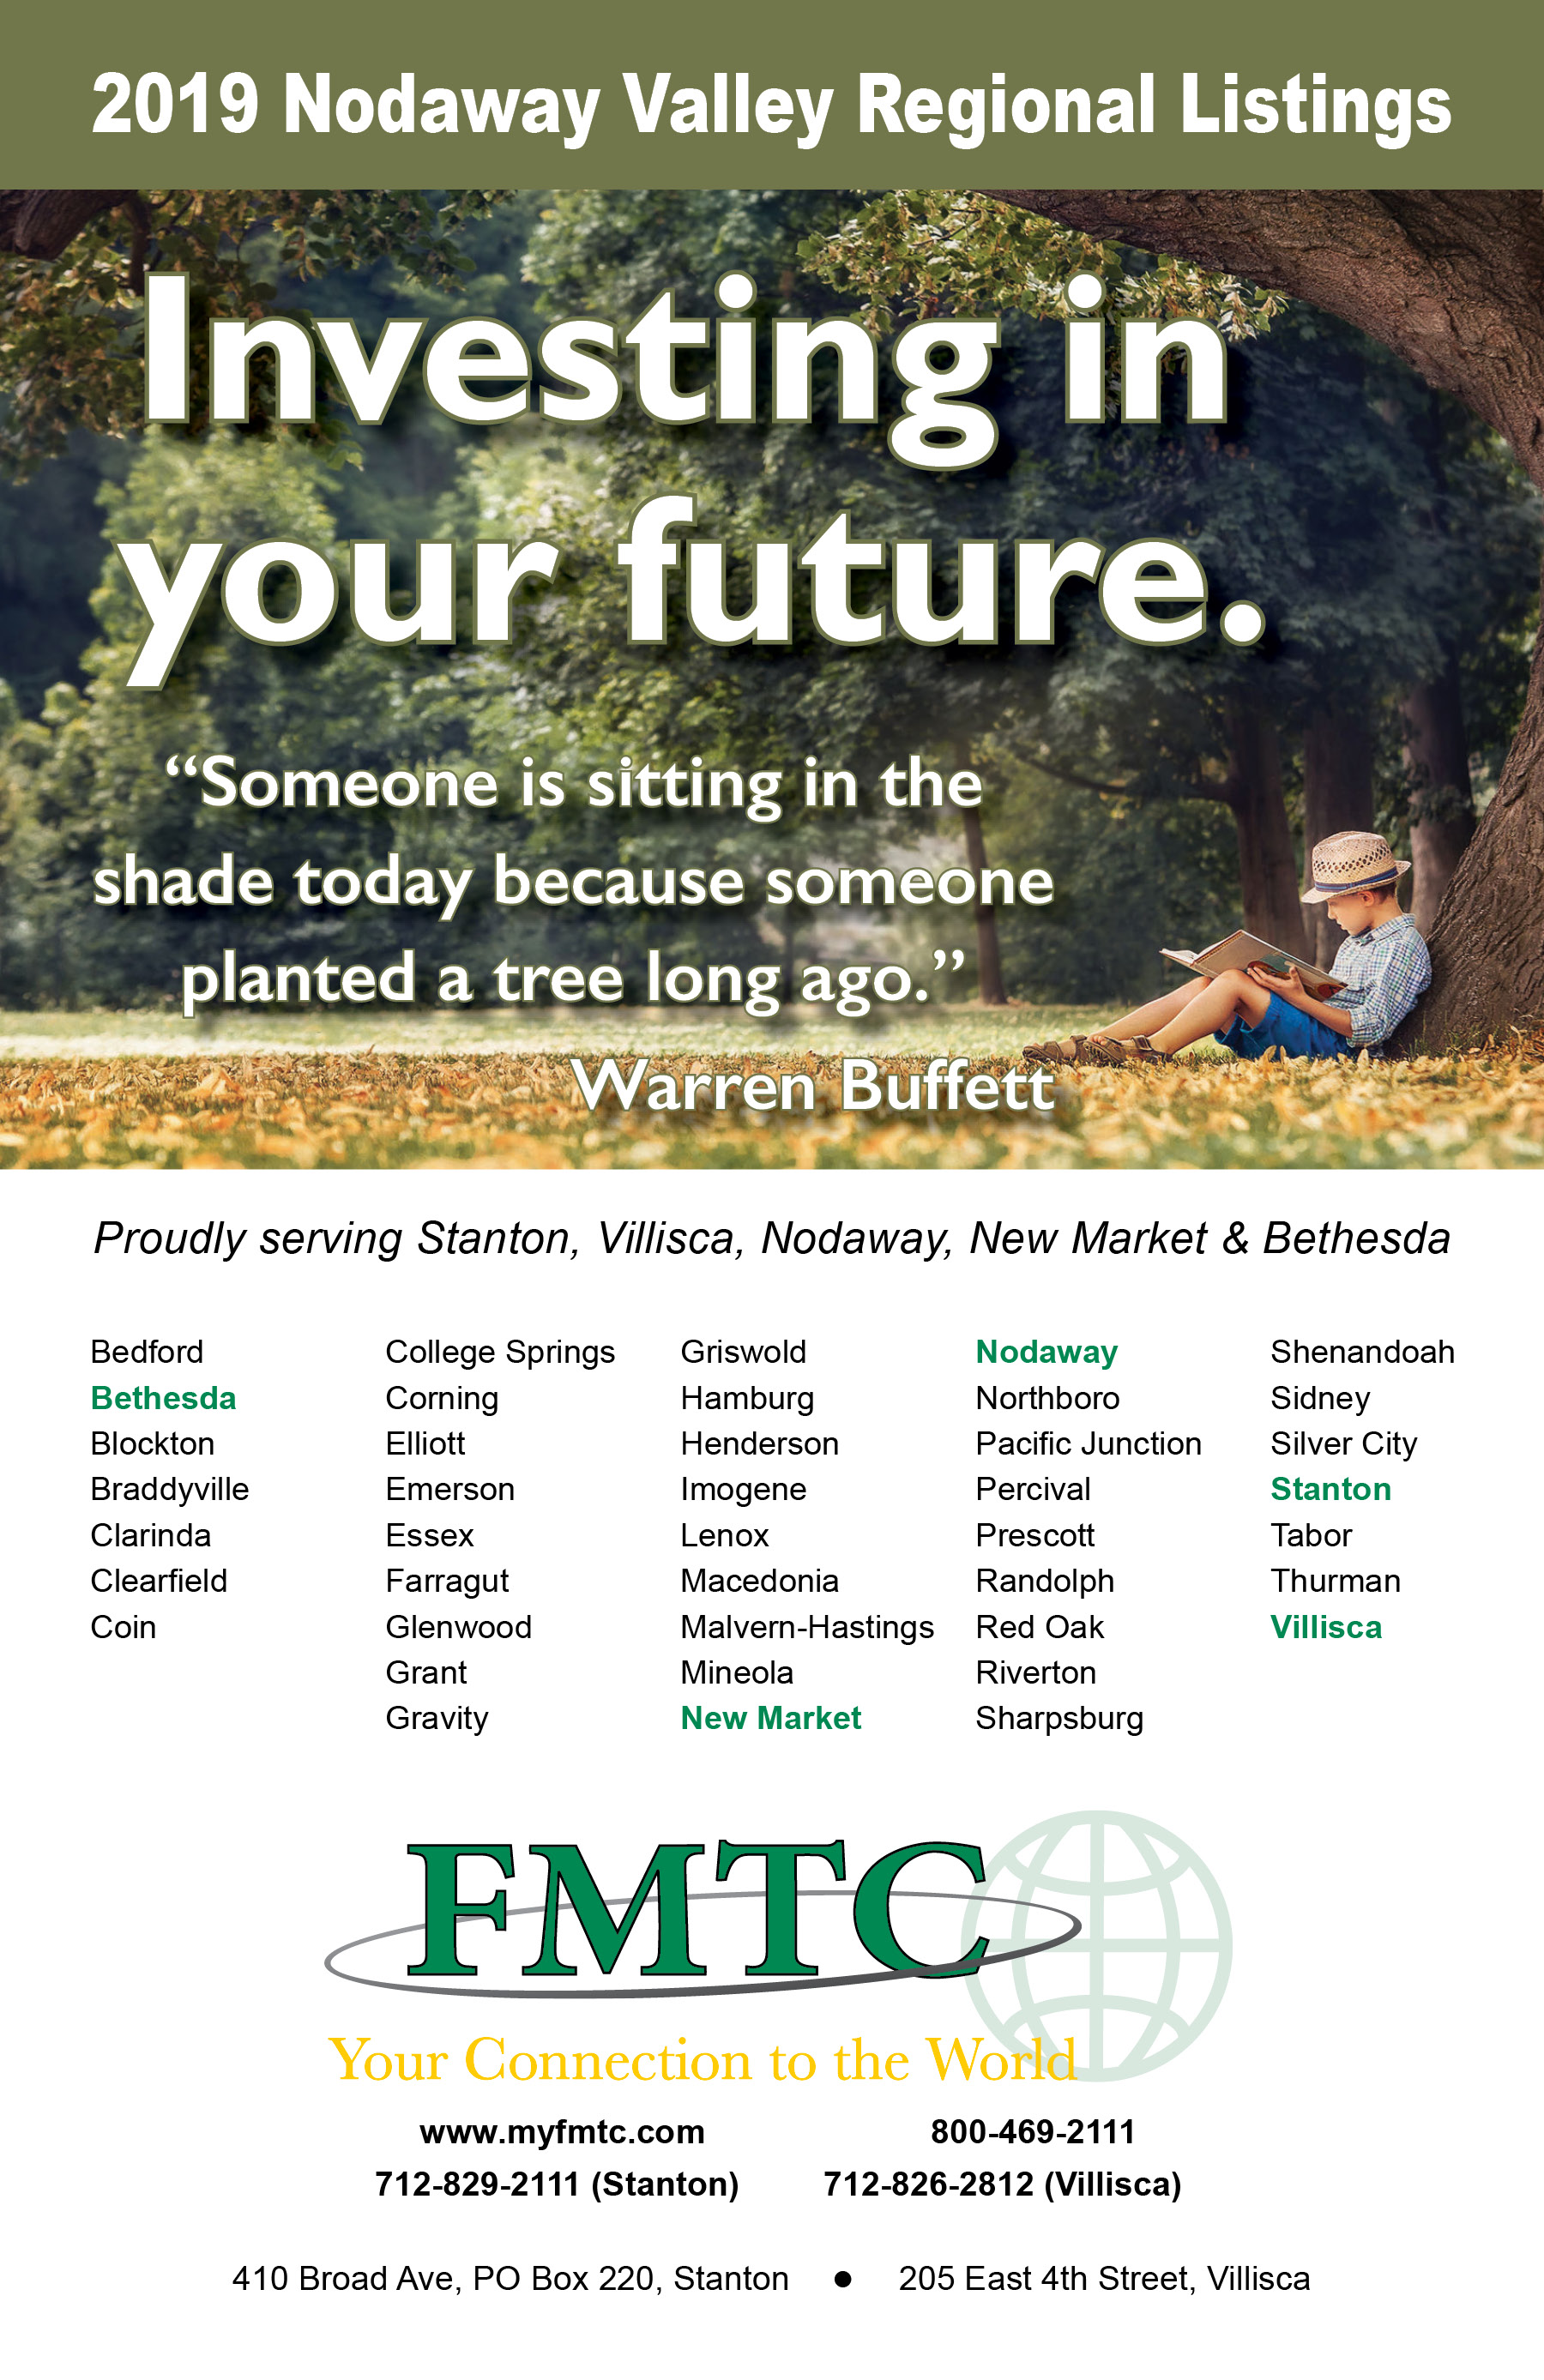 FMTC Directory Cover - 19.jpg